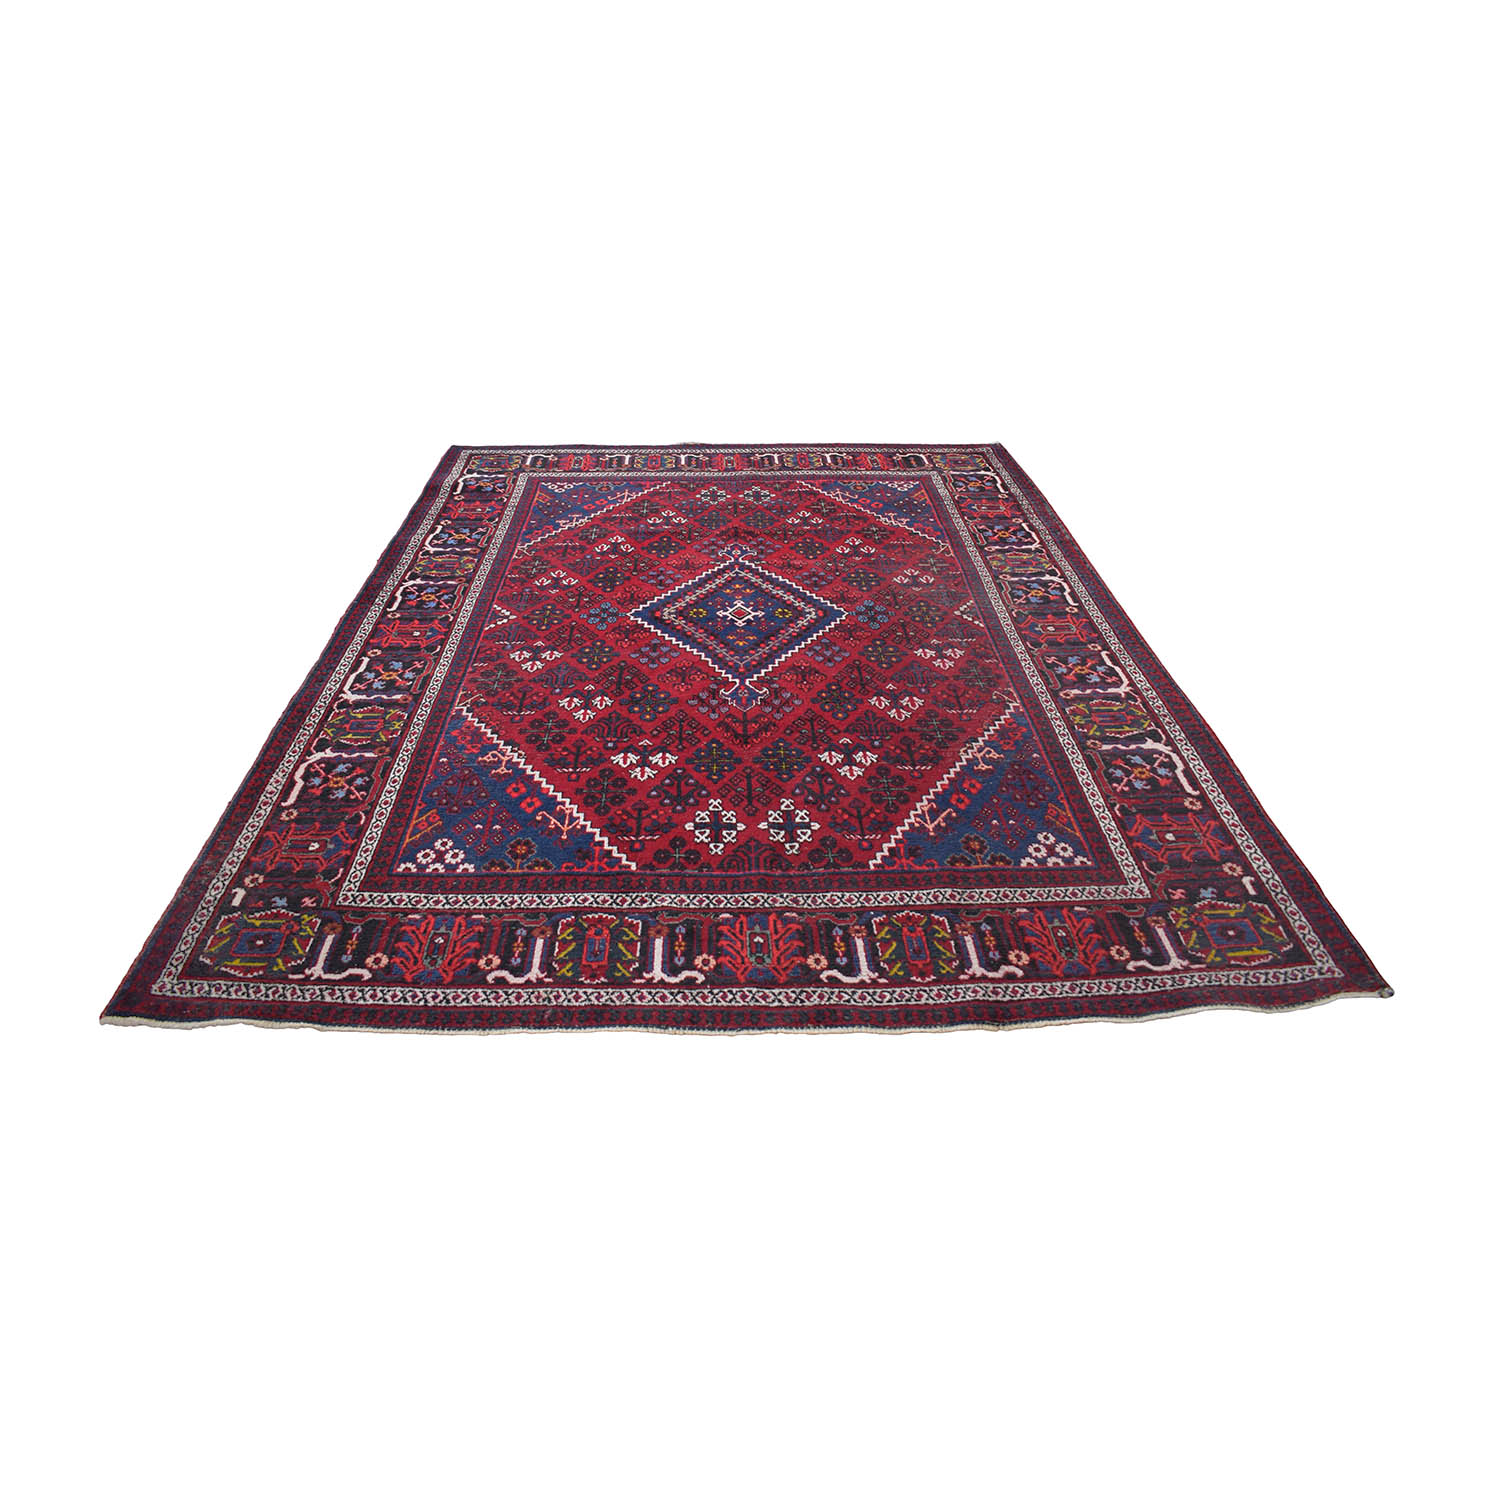 Diamond Burgundy Red and Navy Blue Rug used